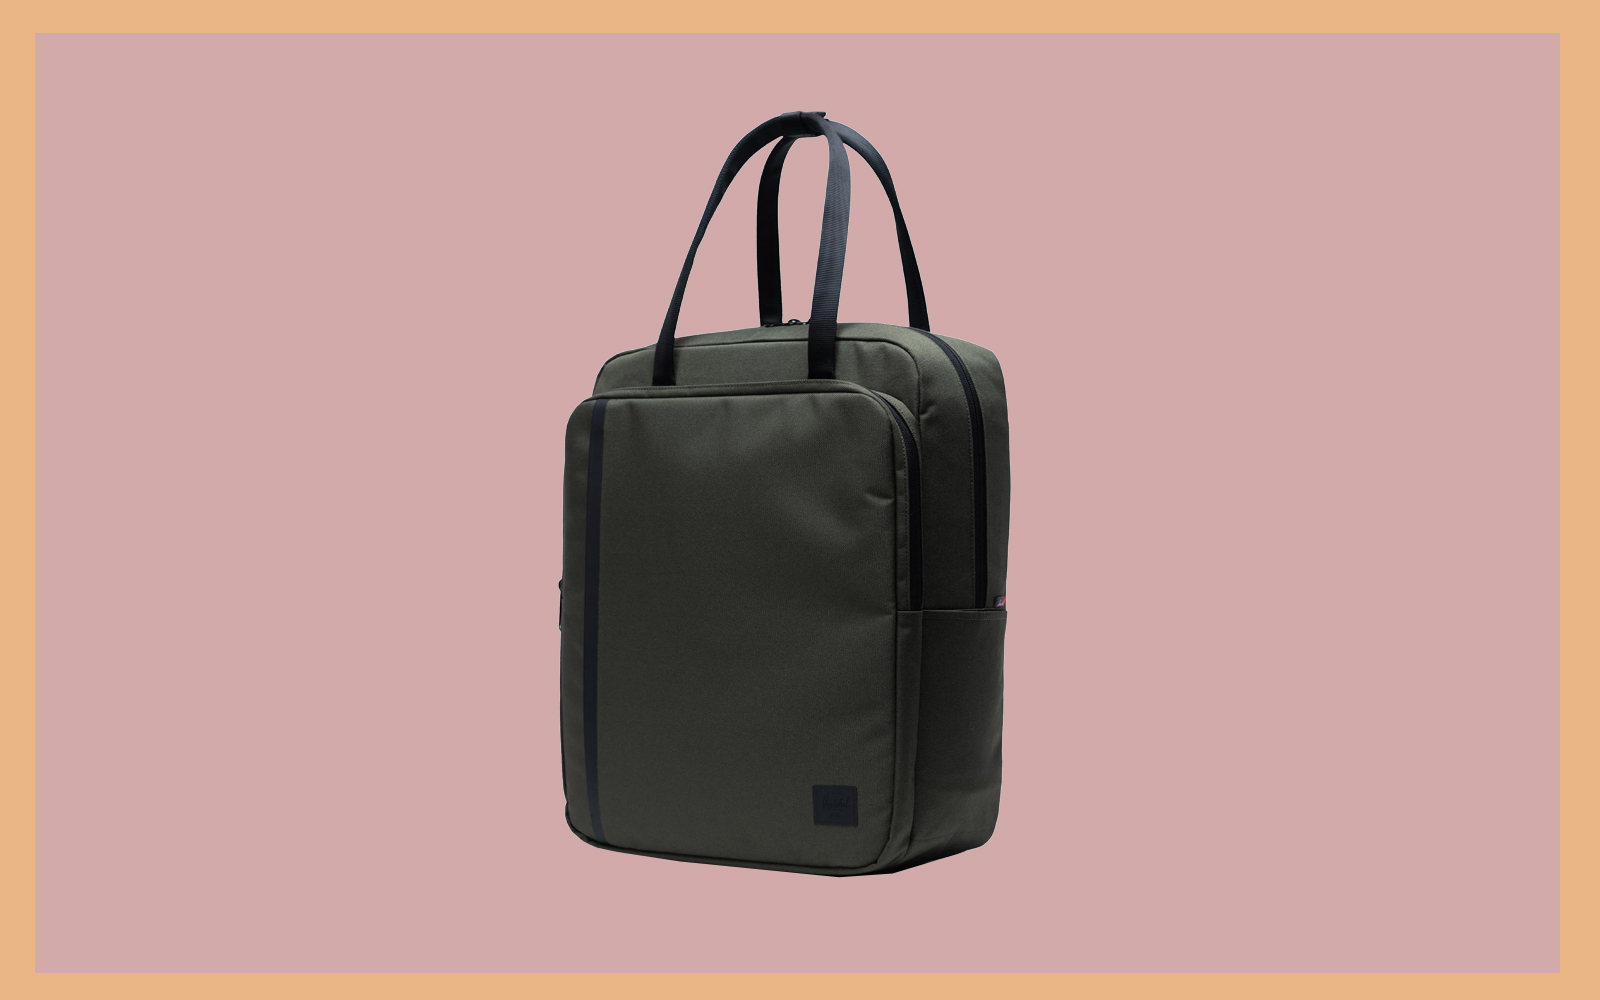 Herschel Supply Co. Travel Tote Backpack Tout